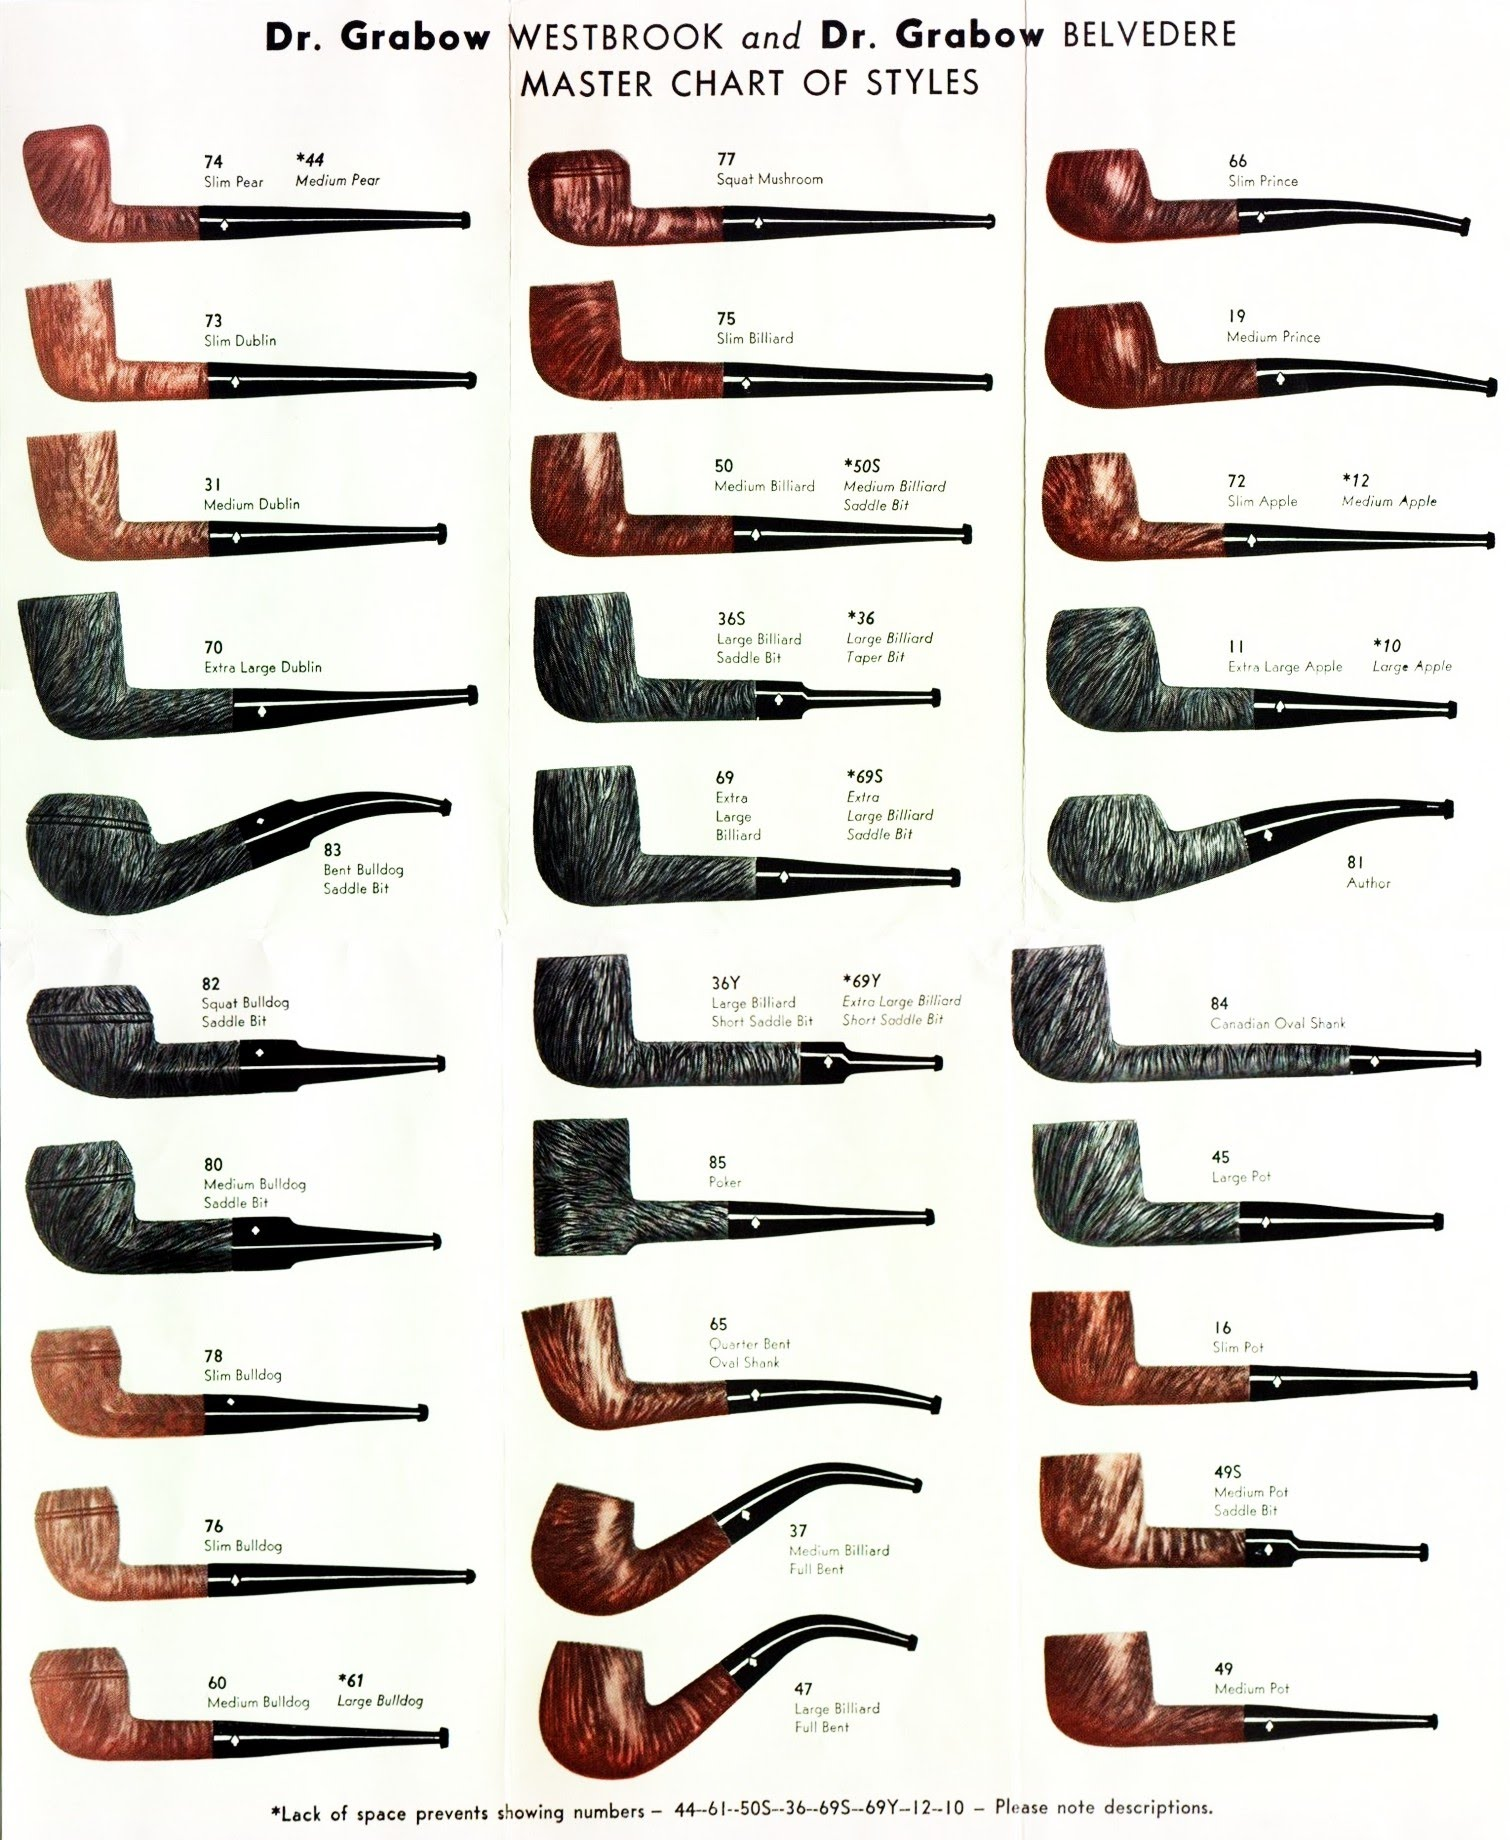 Kaywoodie pipe dating chart